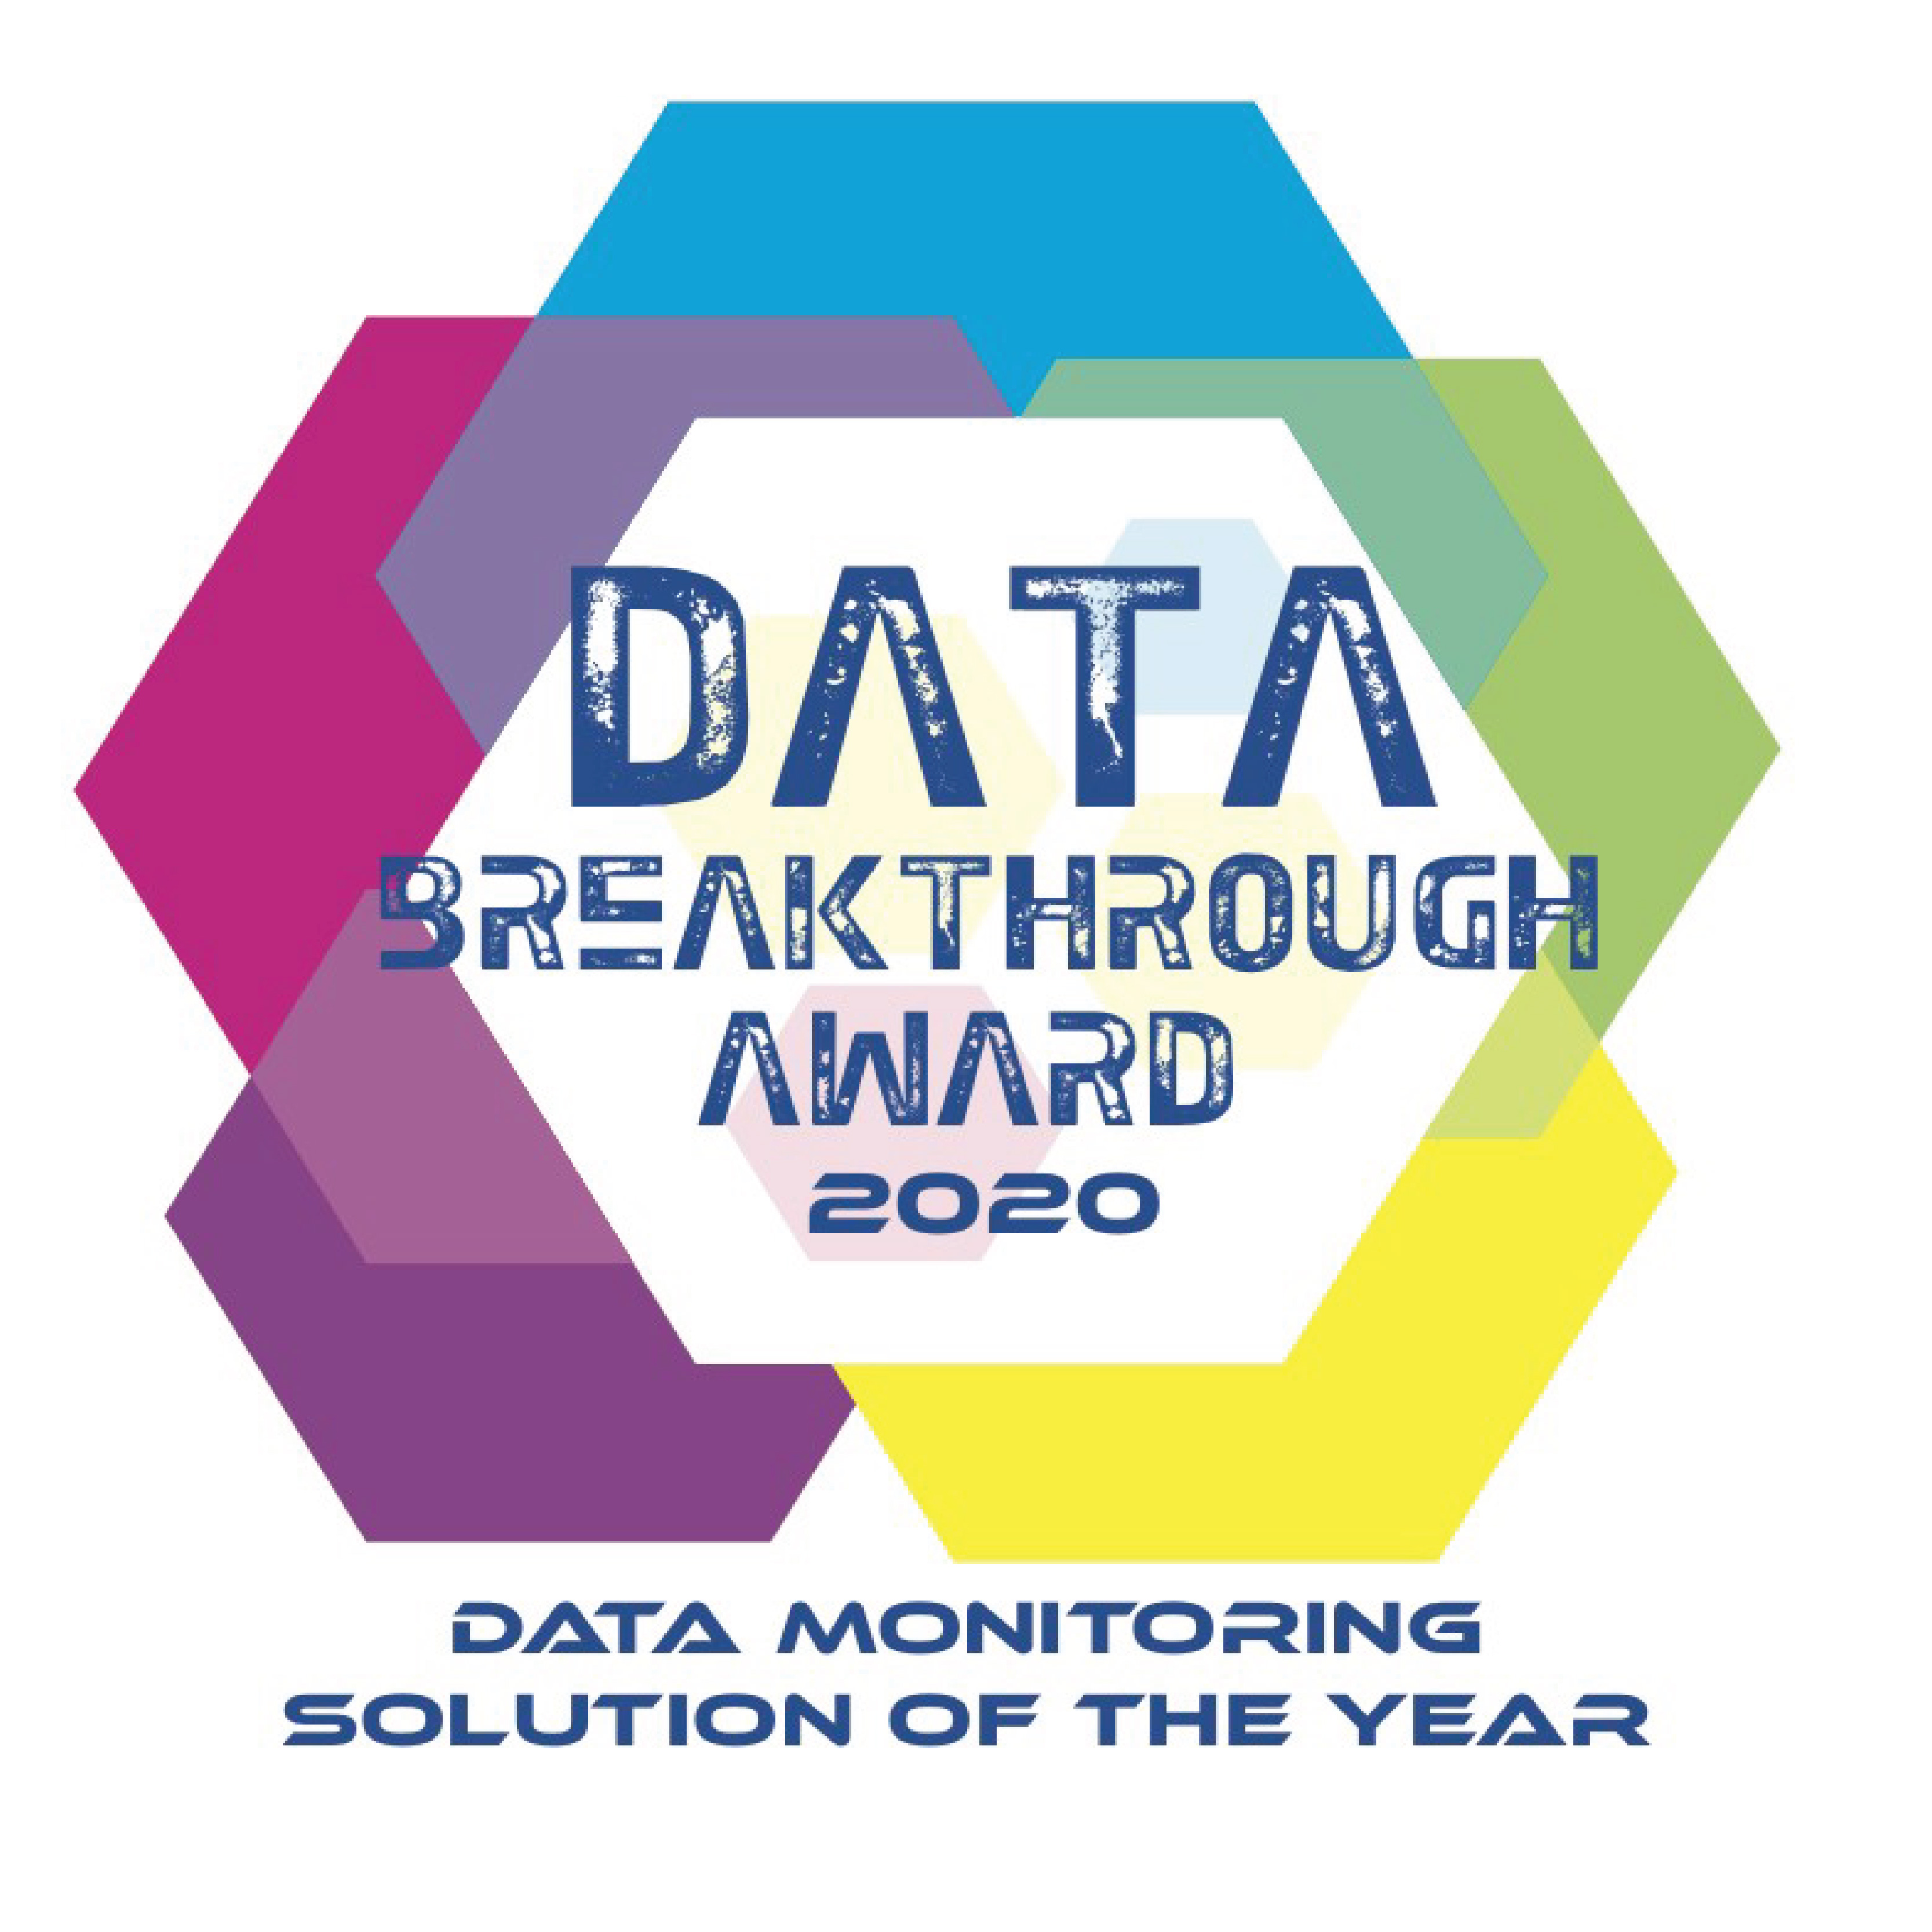 data-monitoring-solution-of-the-year